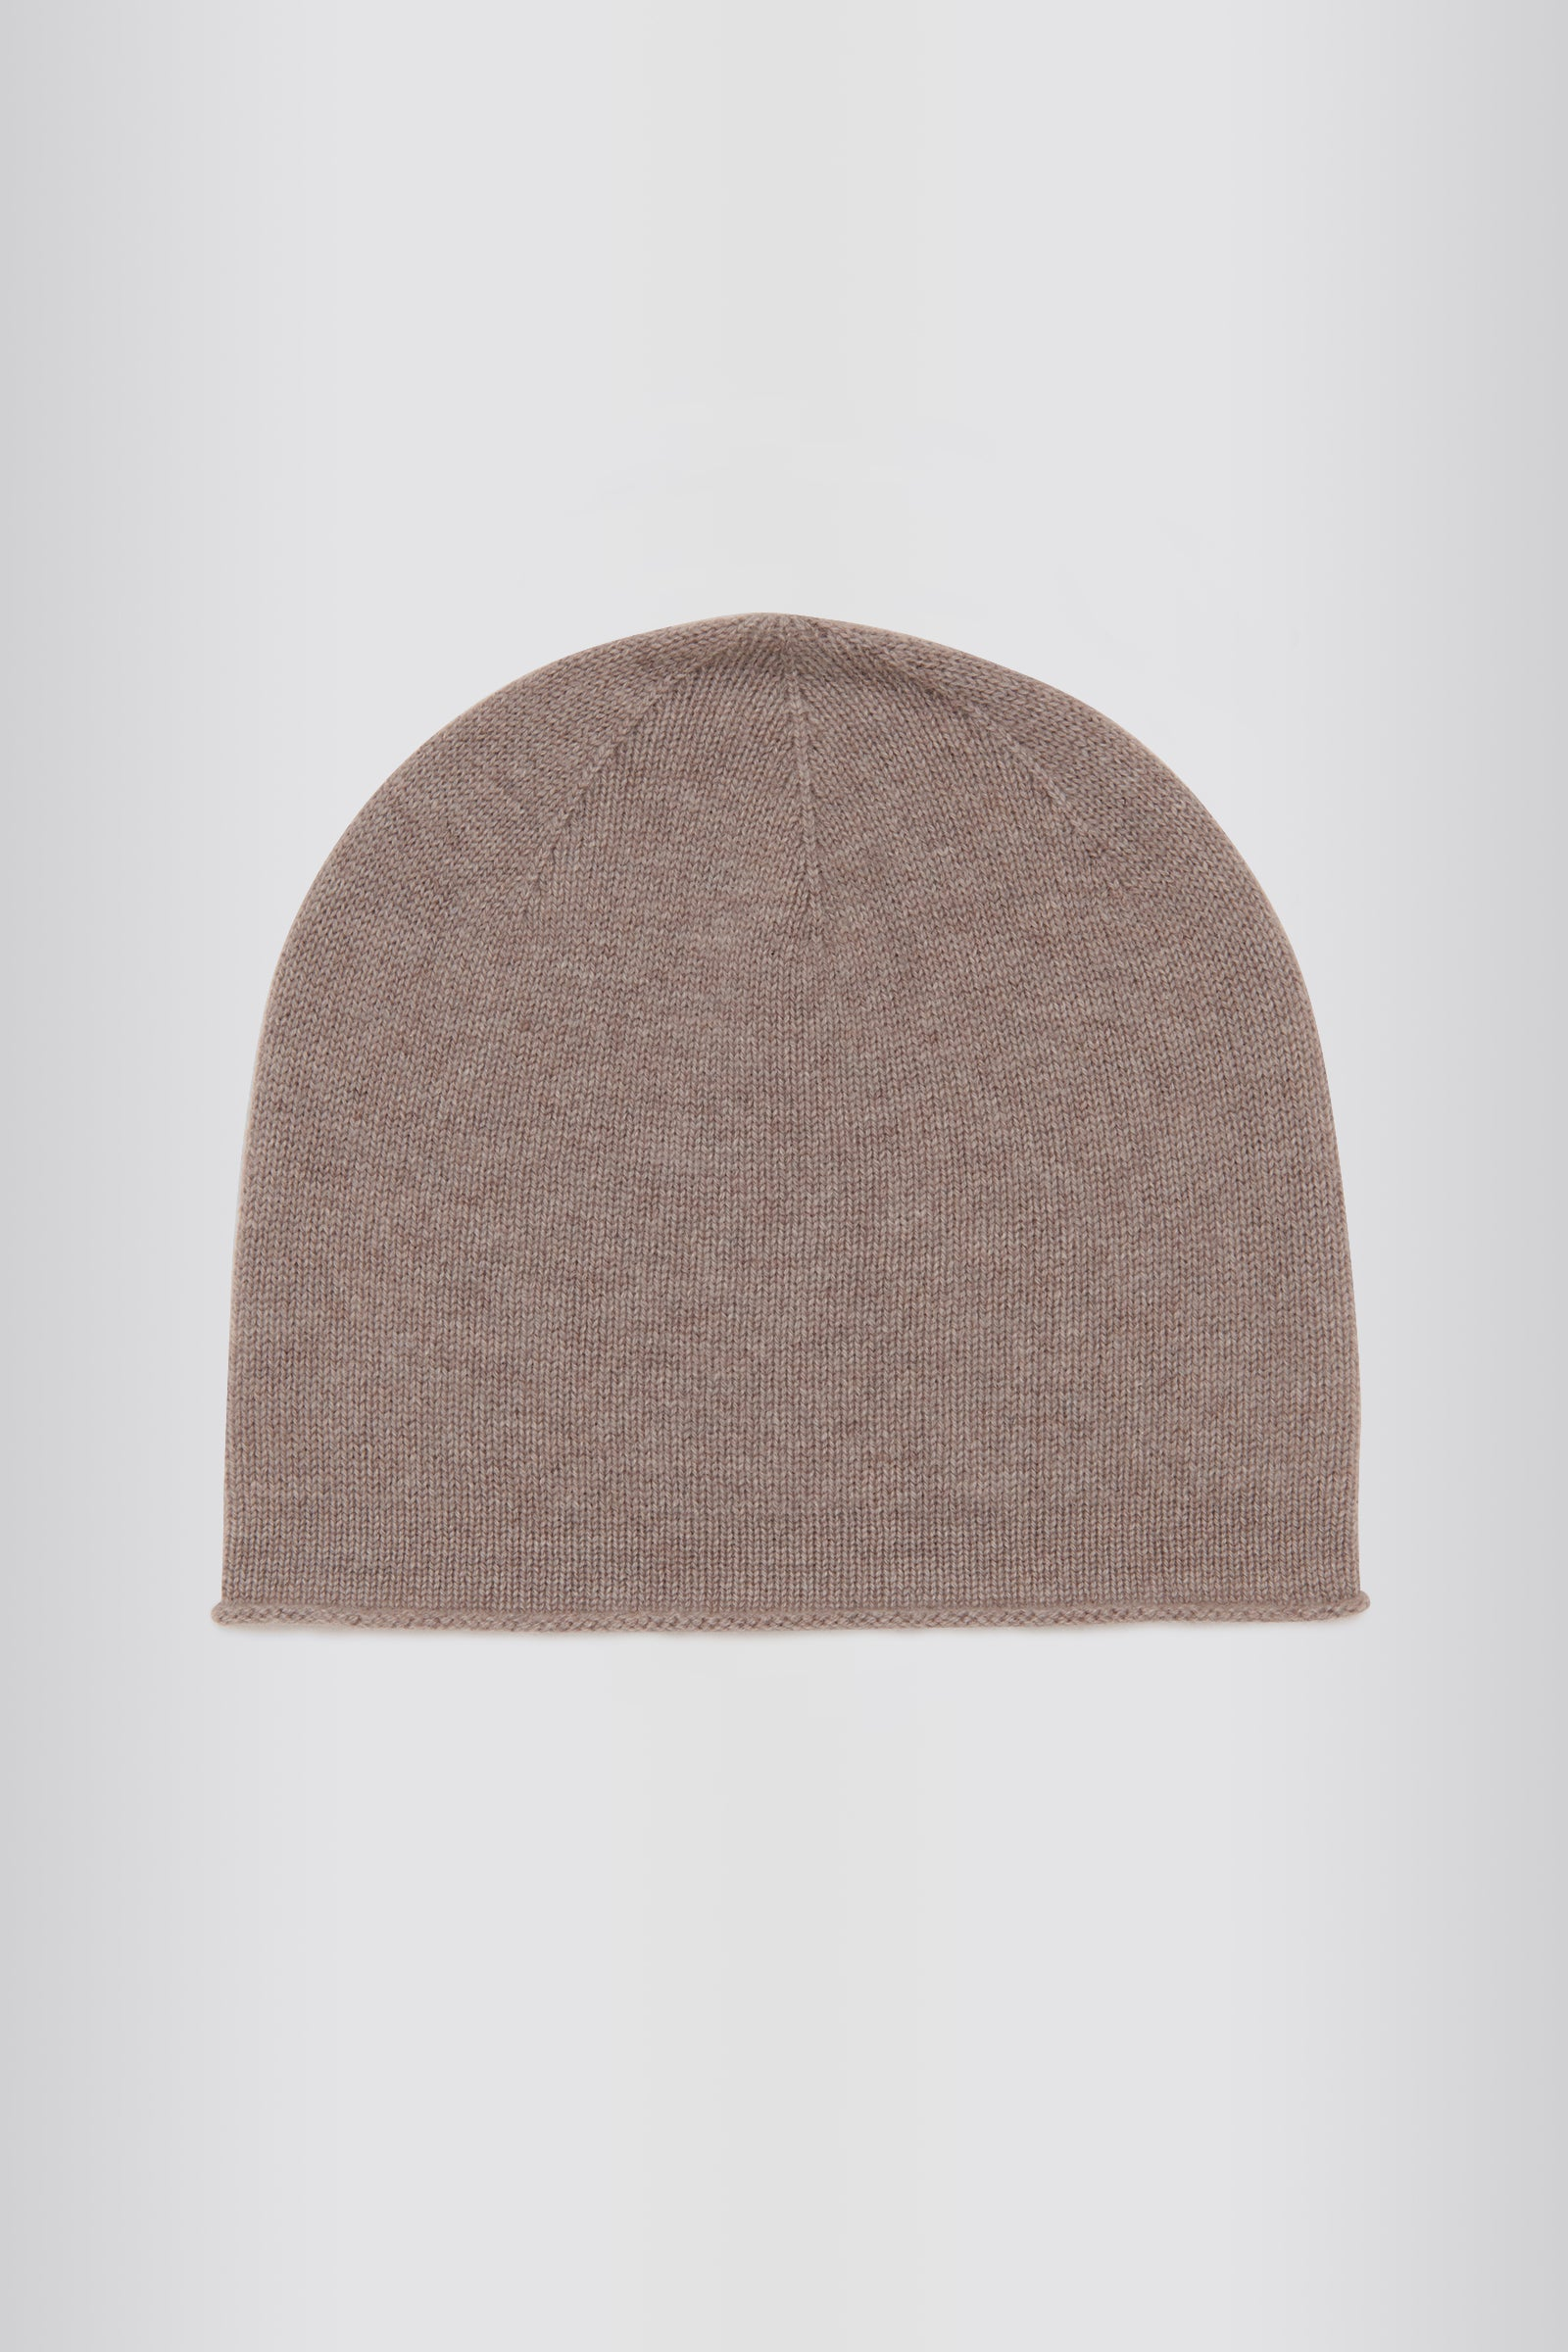 Kal Rieman Cashmere Cap in Drift on Model  Side Close-up View